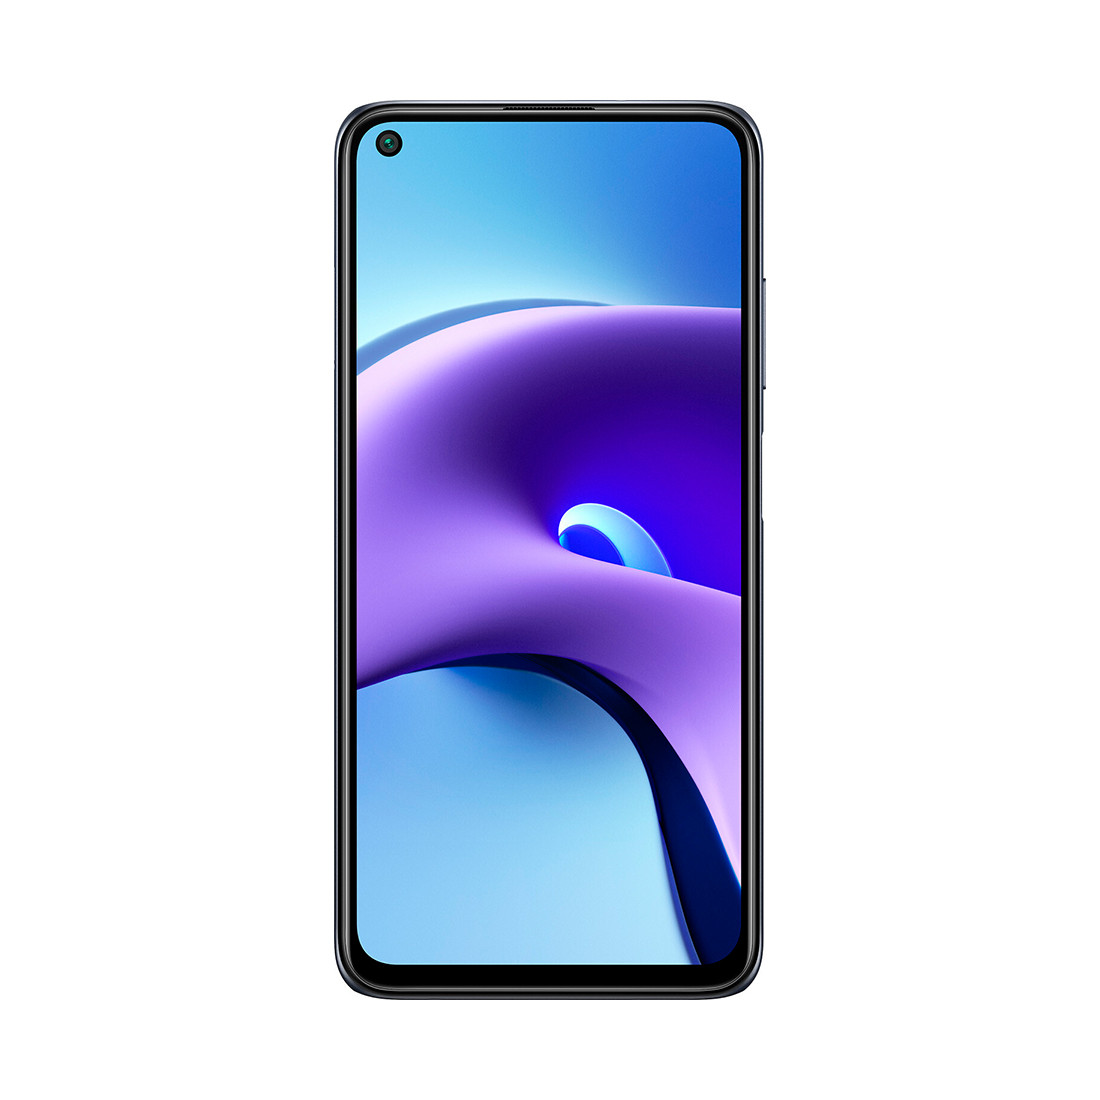 Мобильный телефон Xiaomi Redmi Note 9T 128GB Nightfall Black